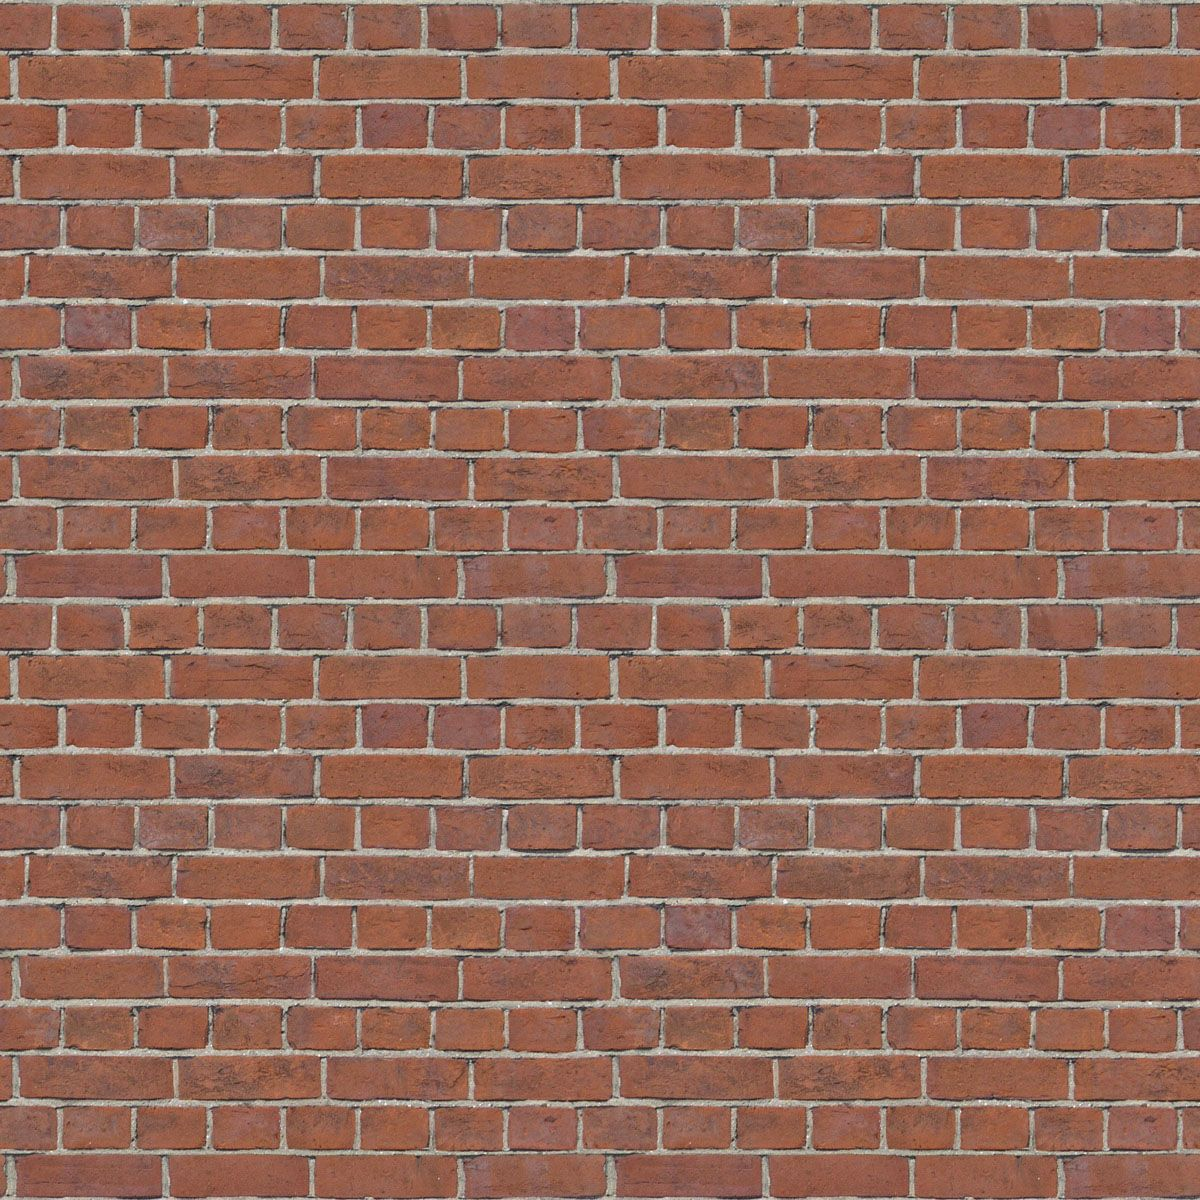 Tileable Red Brick Wall Texture 1200x1200 WallsSeamless TexturesWall